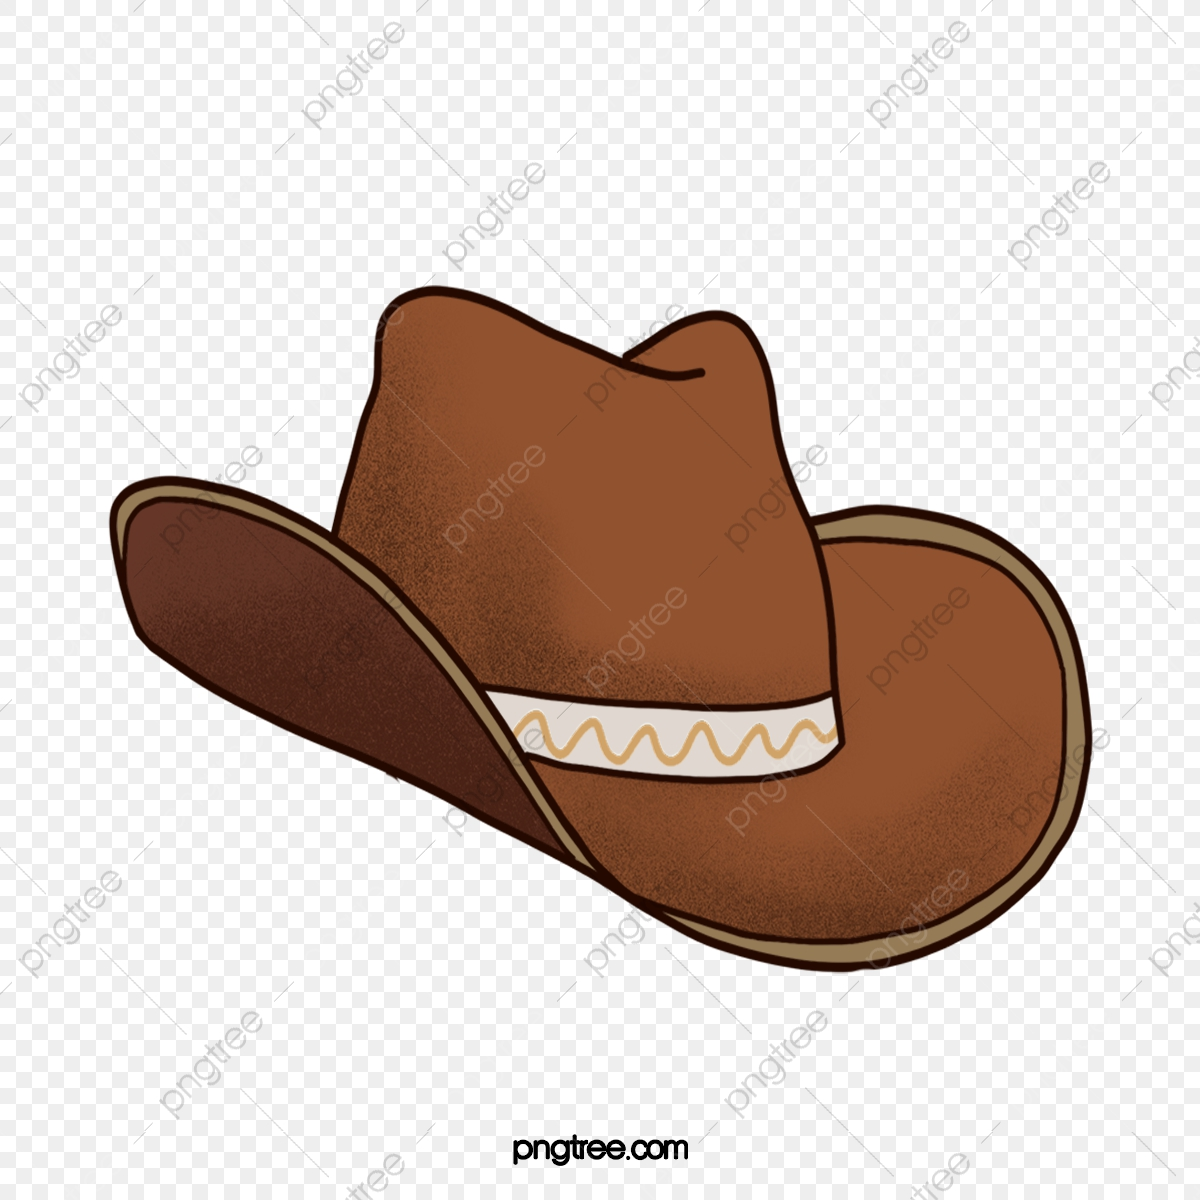 Brown Cowboy Hat Cowboy Clipart The Cowboy Hat Hat Png Transparent Clipart Image And Psd File For Free Download Here you can explore hq cowboy hat transparent illustrations, icons and clipart with filter setting like size, type, color etc. https pngtree com freepng brown cowboy hat 3462977 html